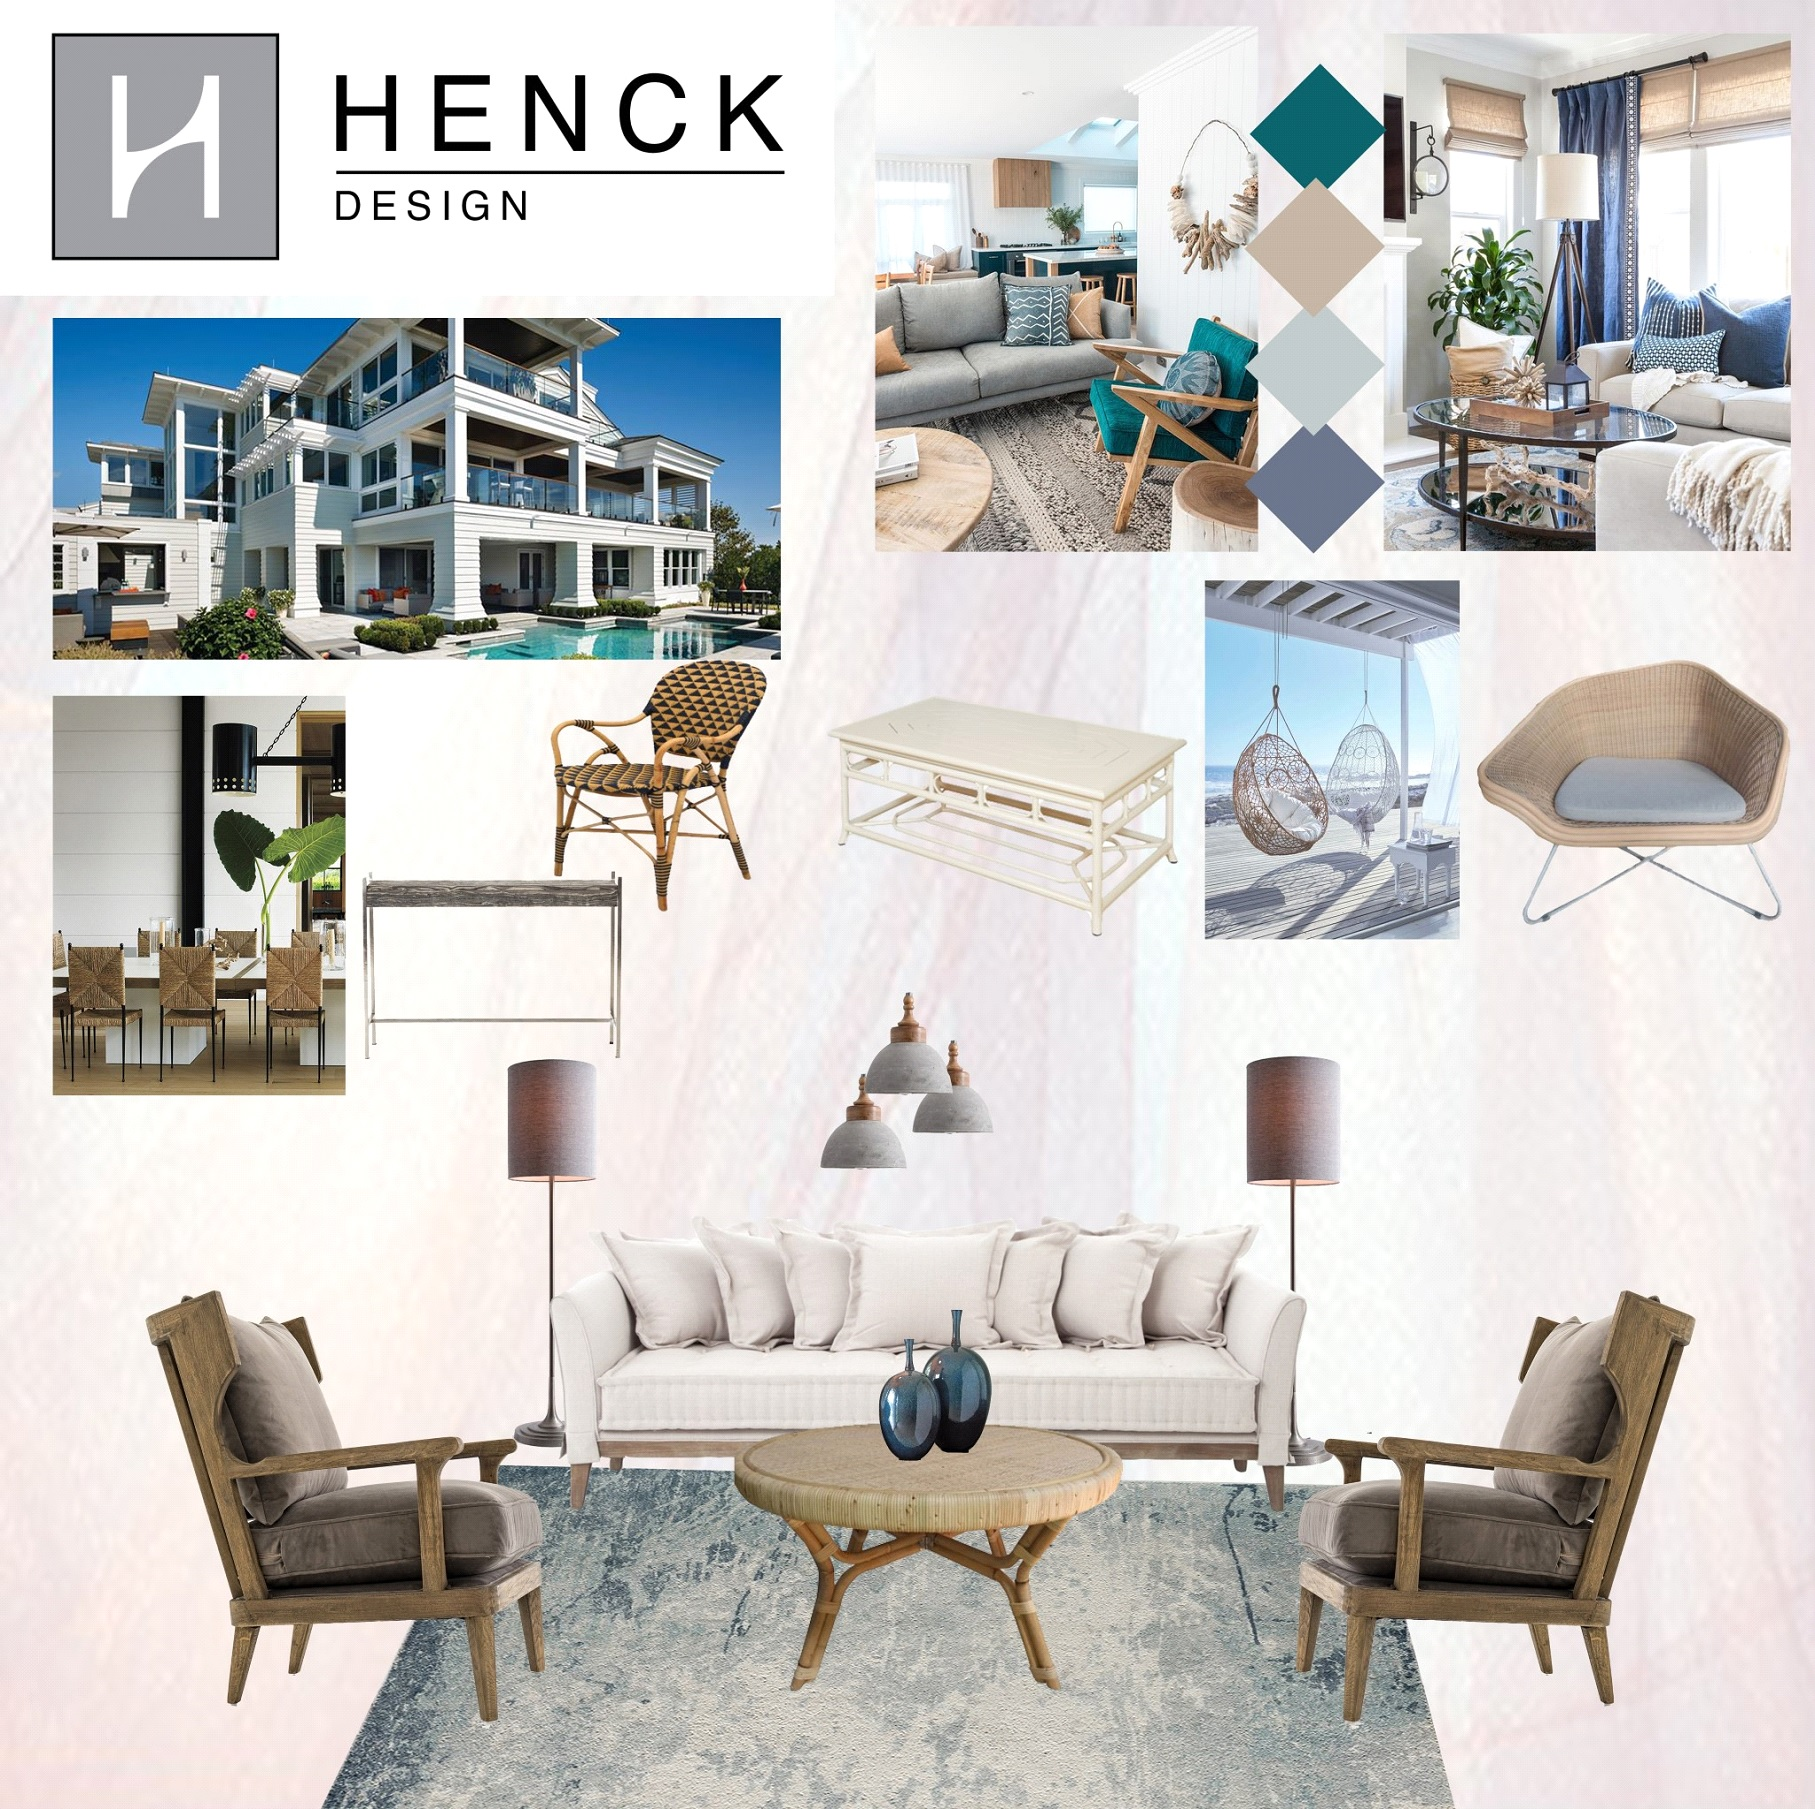 Vacation Homes, Whether Located In Stone Harbor, Avalon, Or Longport  Require A Fresh Interior Design That Implies Seashells, Sun Glasses, And  (true To The ...